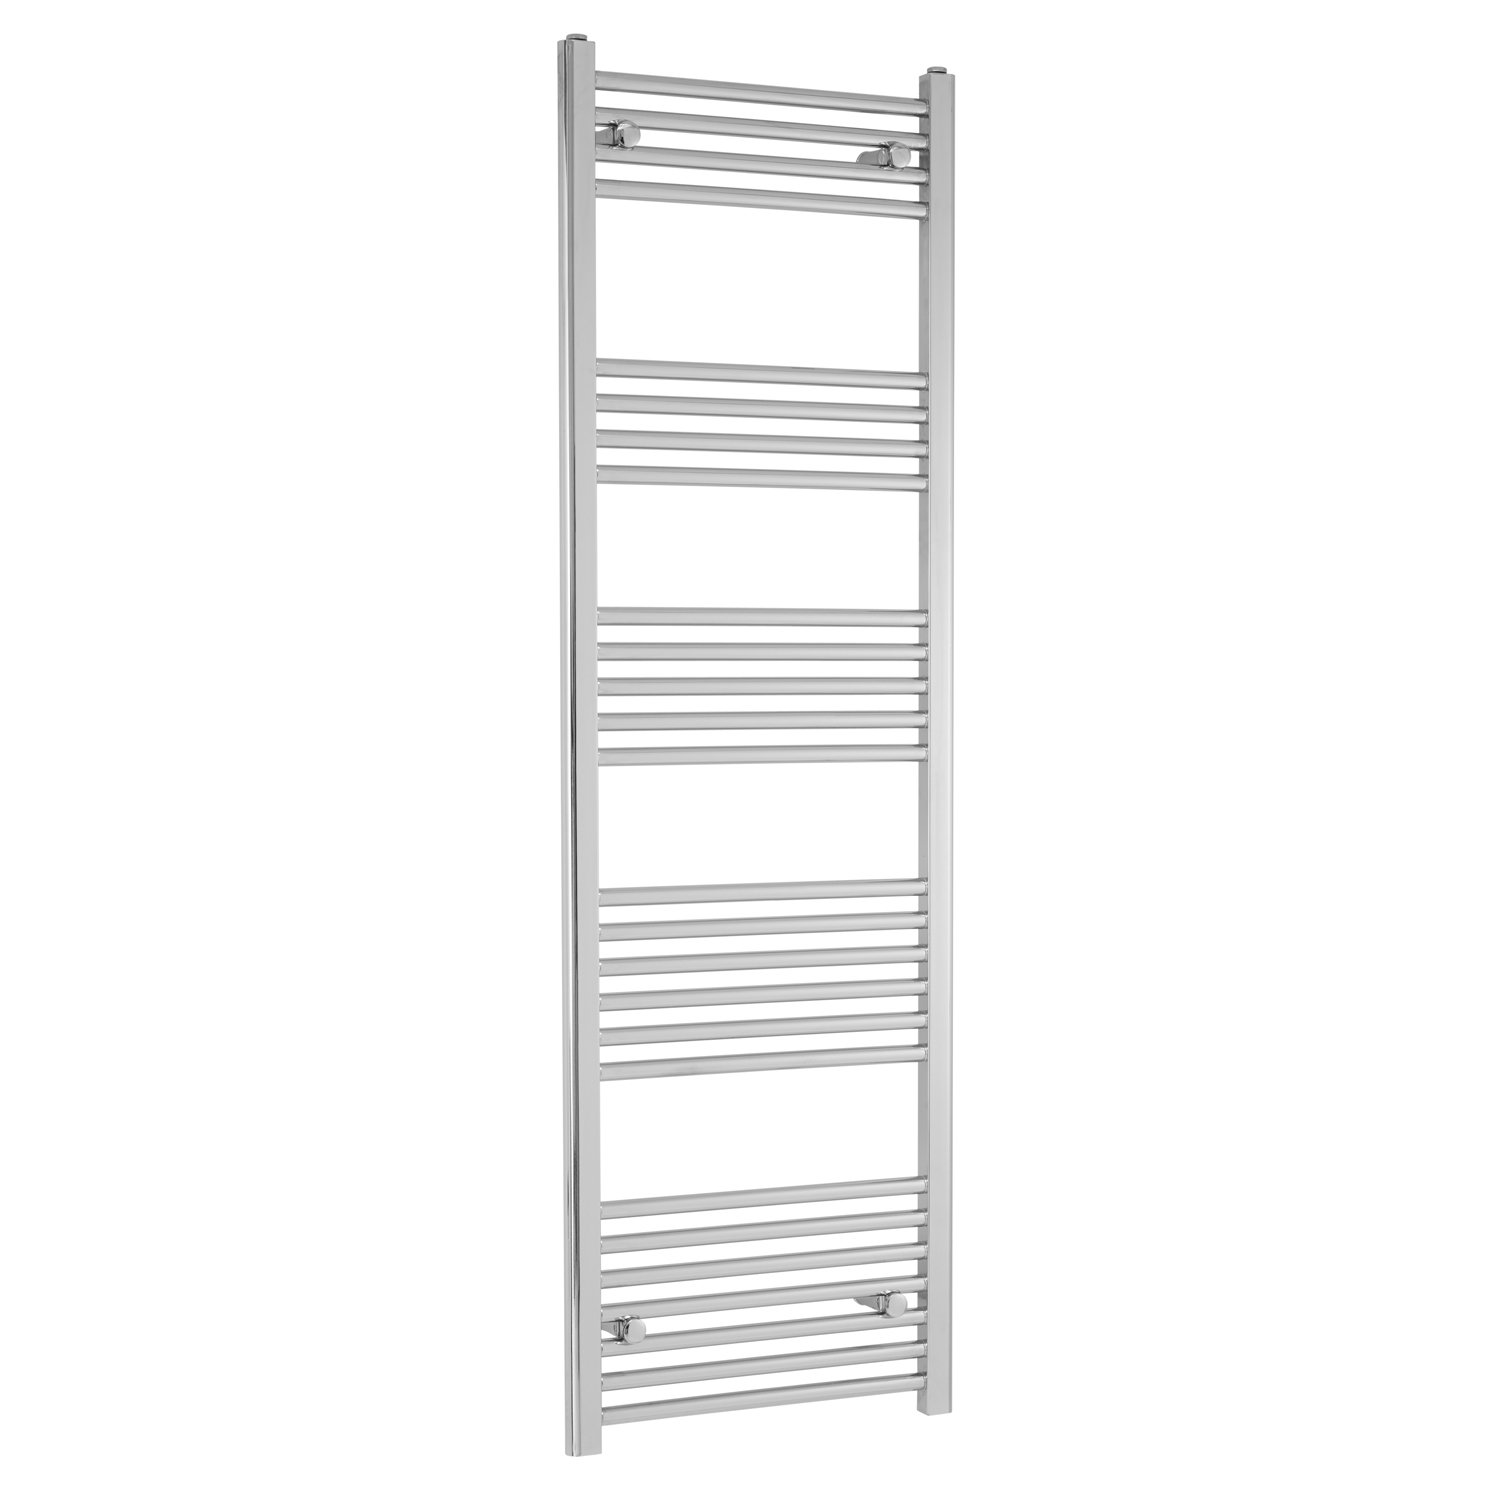 Heatwave Independent Straight Towel Rail 1600mm H X 500mm W - Chrome